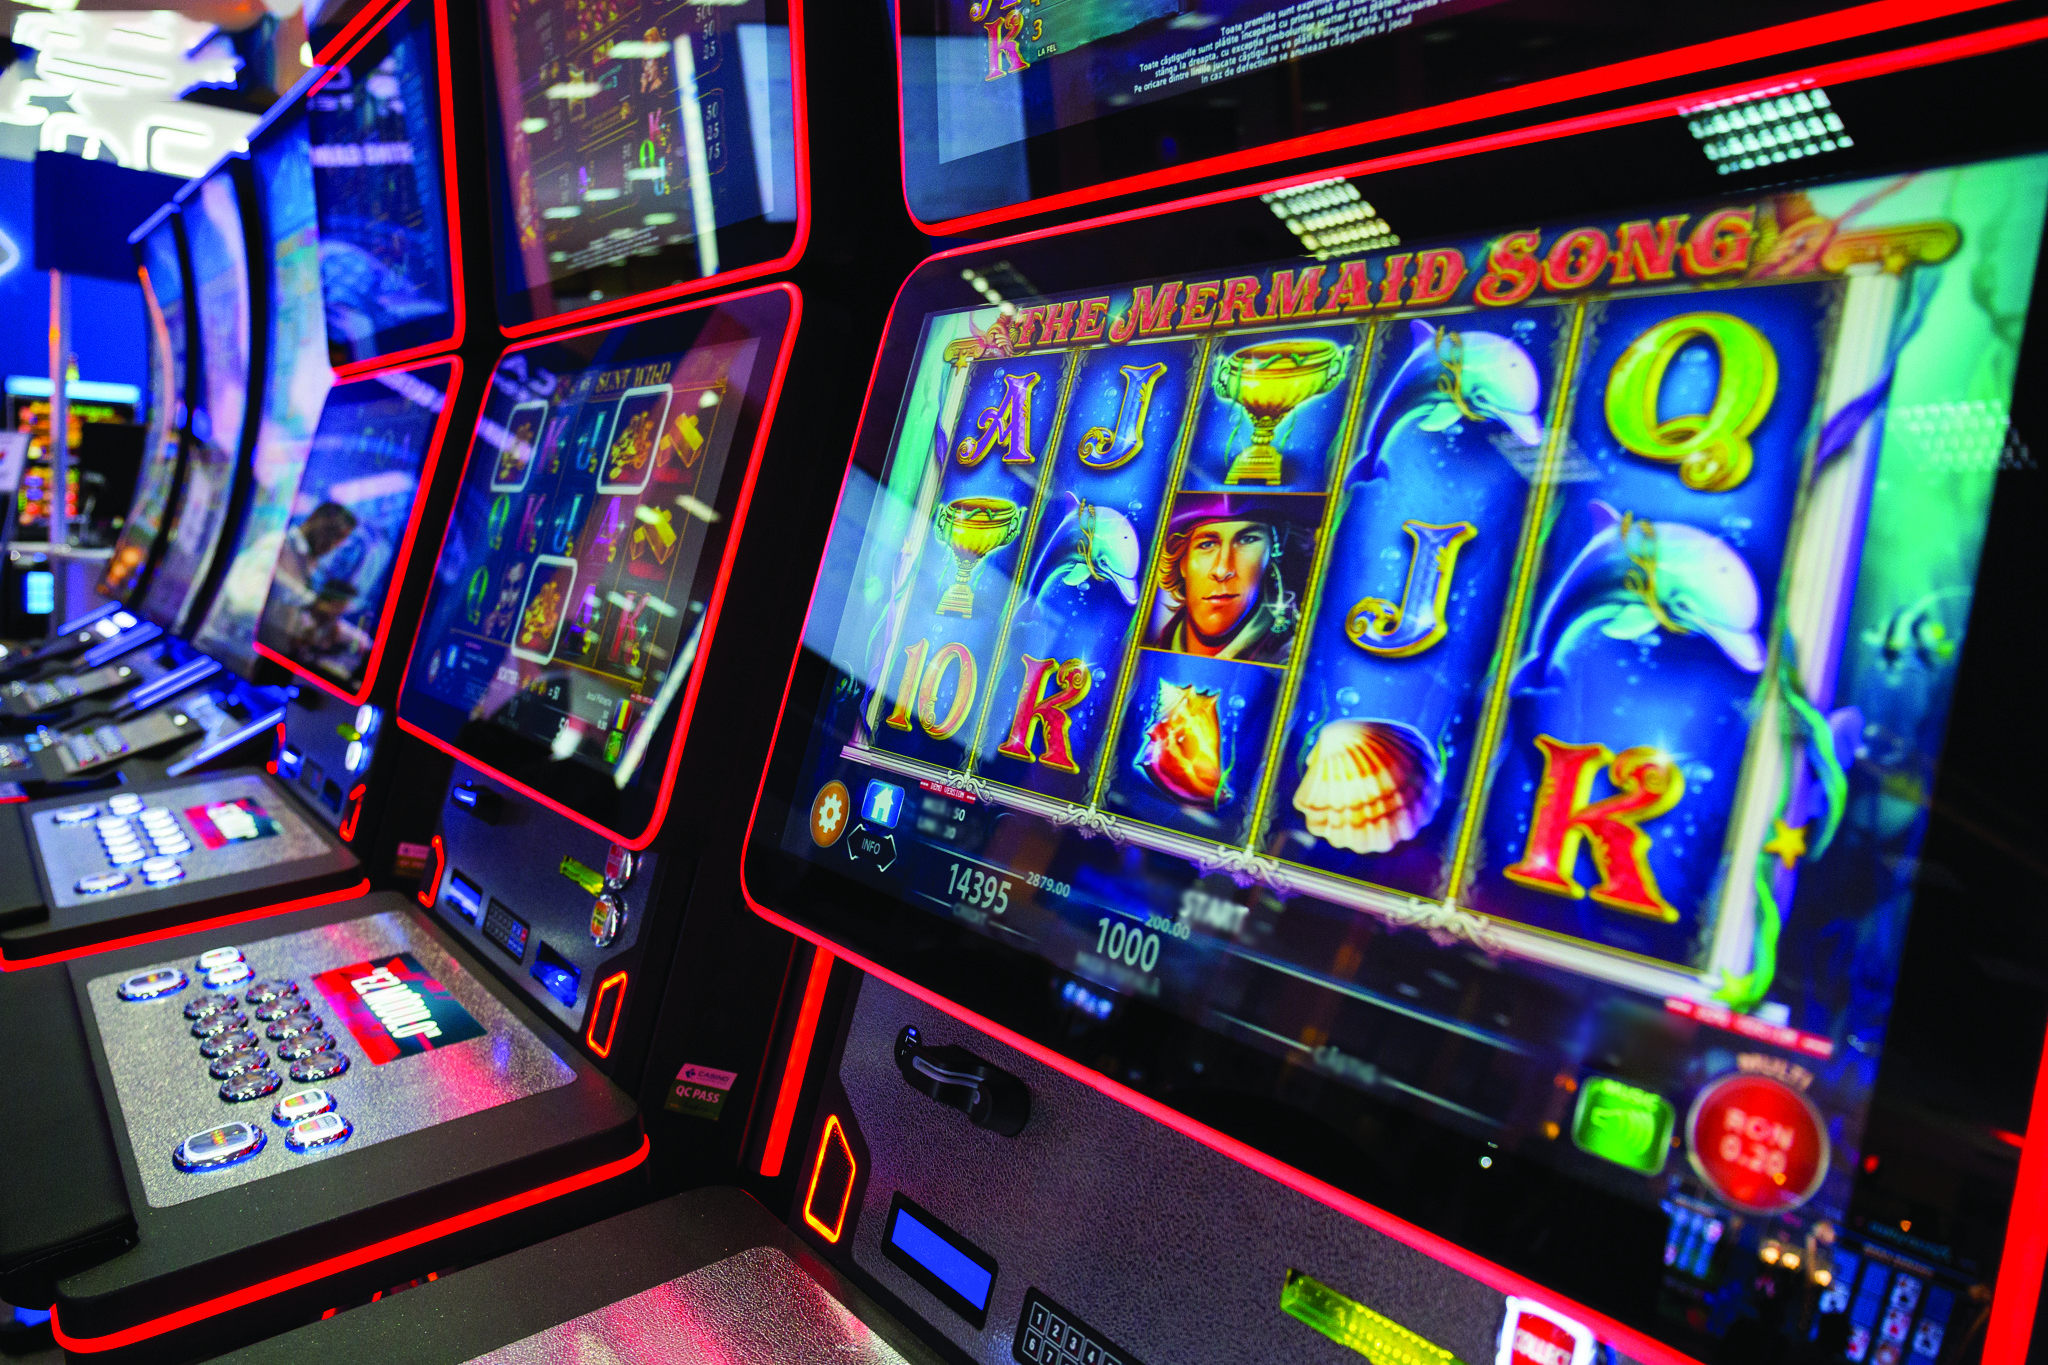 Casino gambling news ez modulo and aurora in dublin casino technology will unveil its latest ez modulo and aurora slot machines at the irish gaming show in dublin next week malvernweather